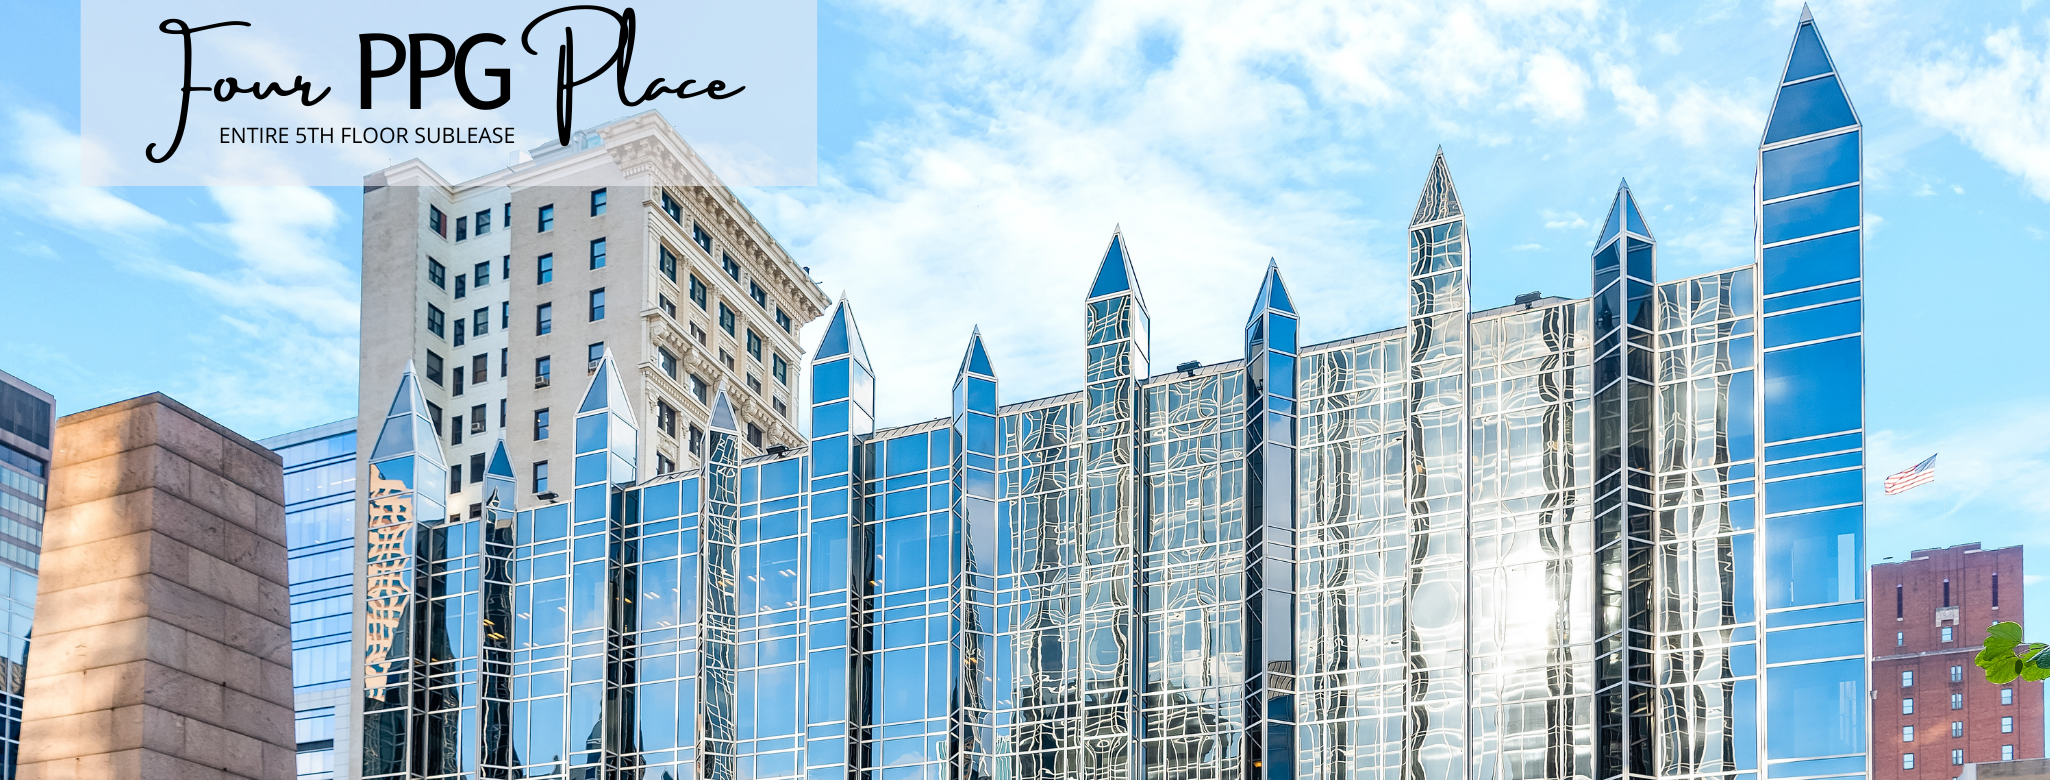 Four PPG Place Sublease